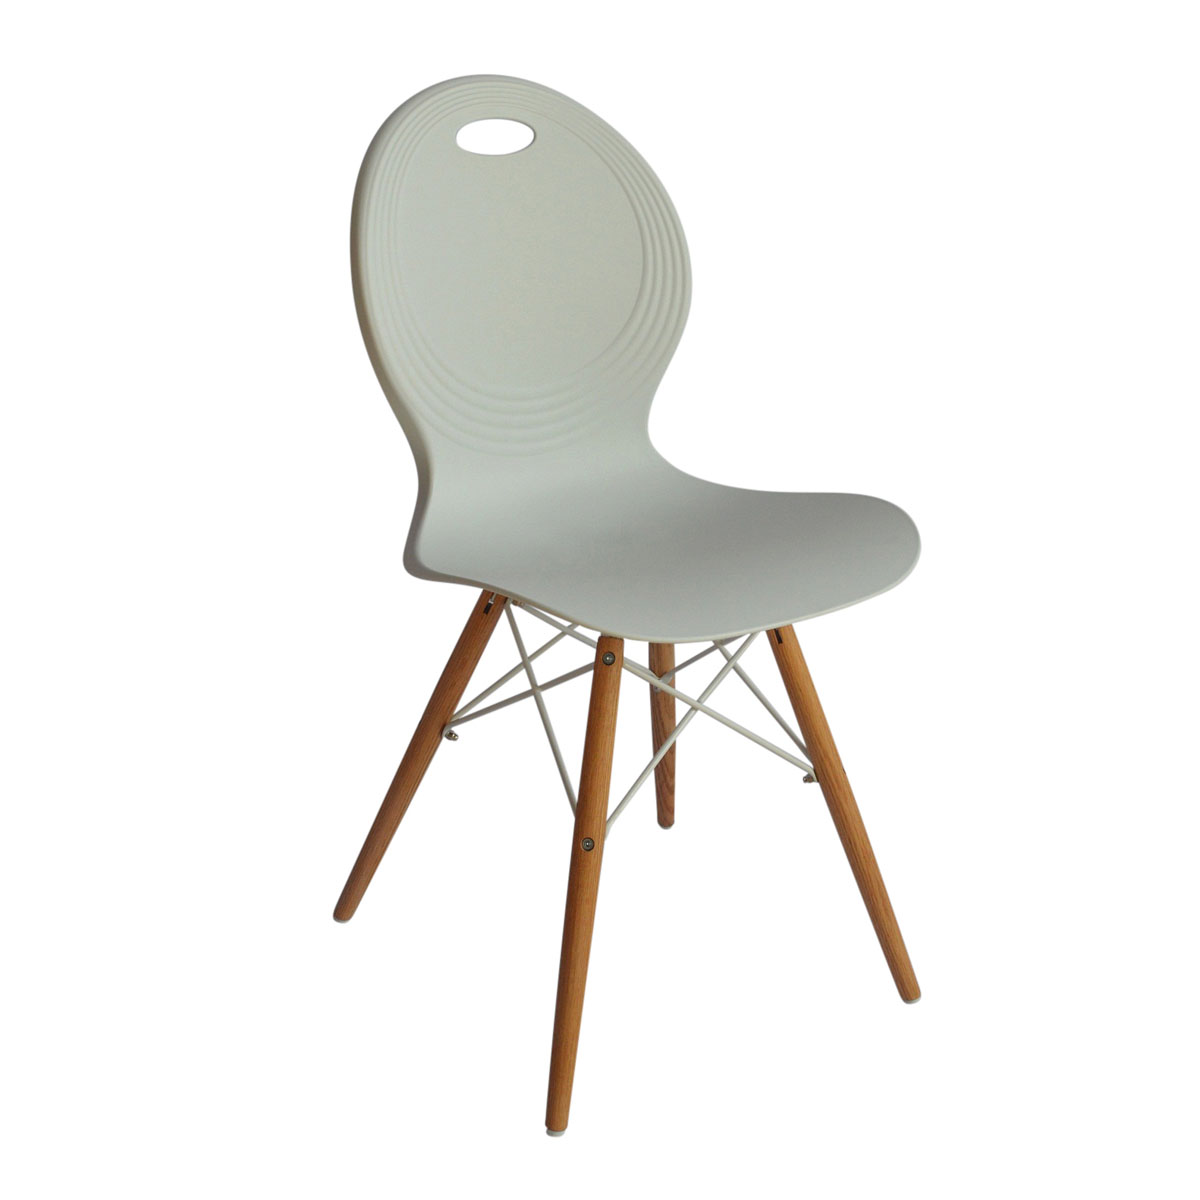 2x-Trenz-Wooden-Dining-Chair-Kitchen-Bar-Stools-Modern-Home-Furniture-White